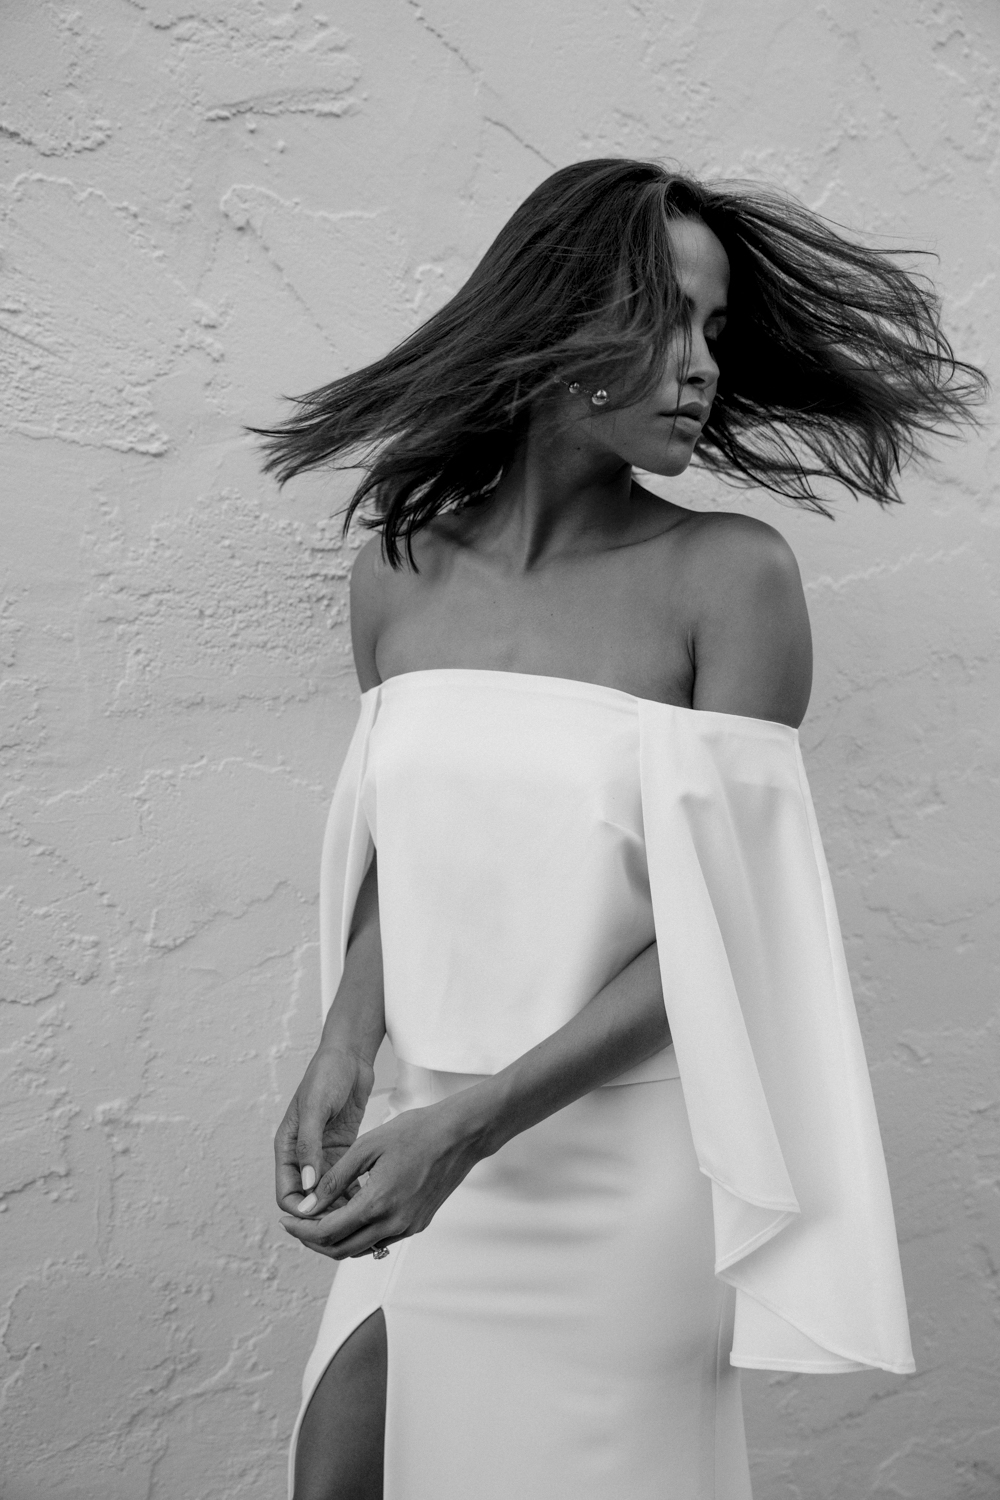 CARMEN - Off-shoulder, crepe caped top. For the super woman in all of us. Here she comes to save the day.